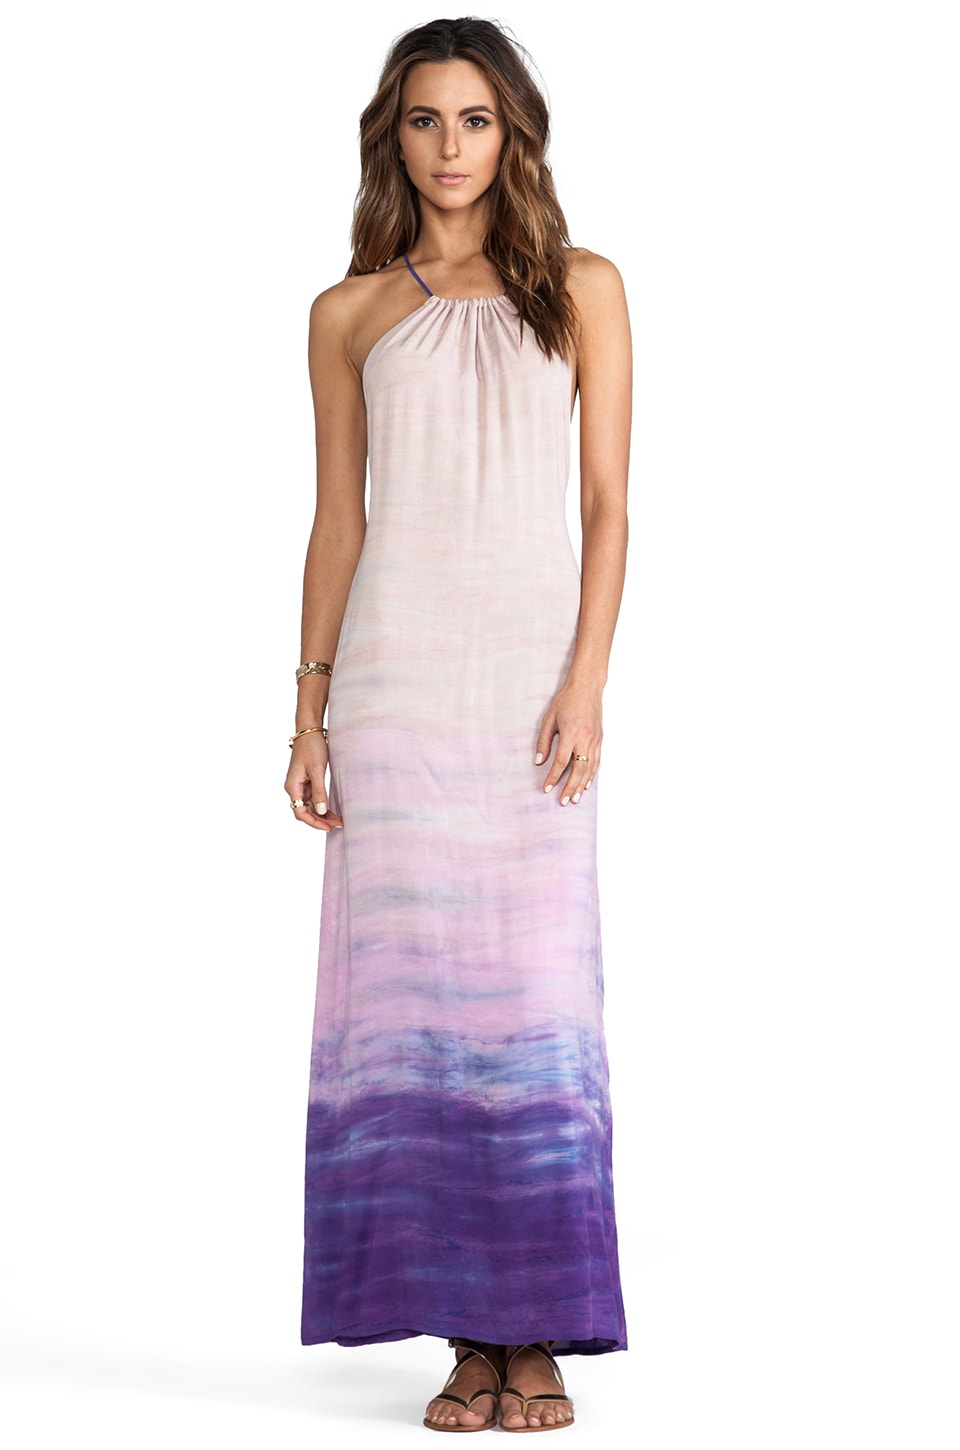 WOODLEIGH Mila Tie Dye Maxi Dress in Grape